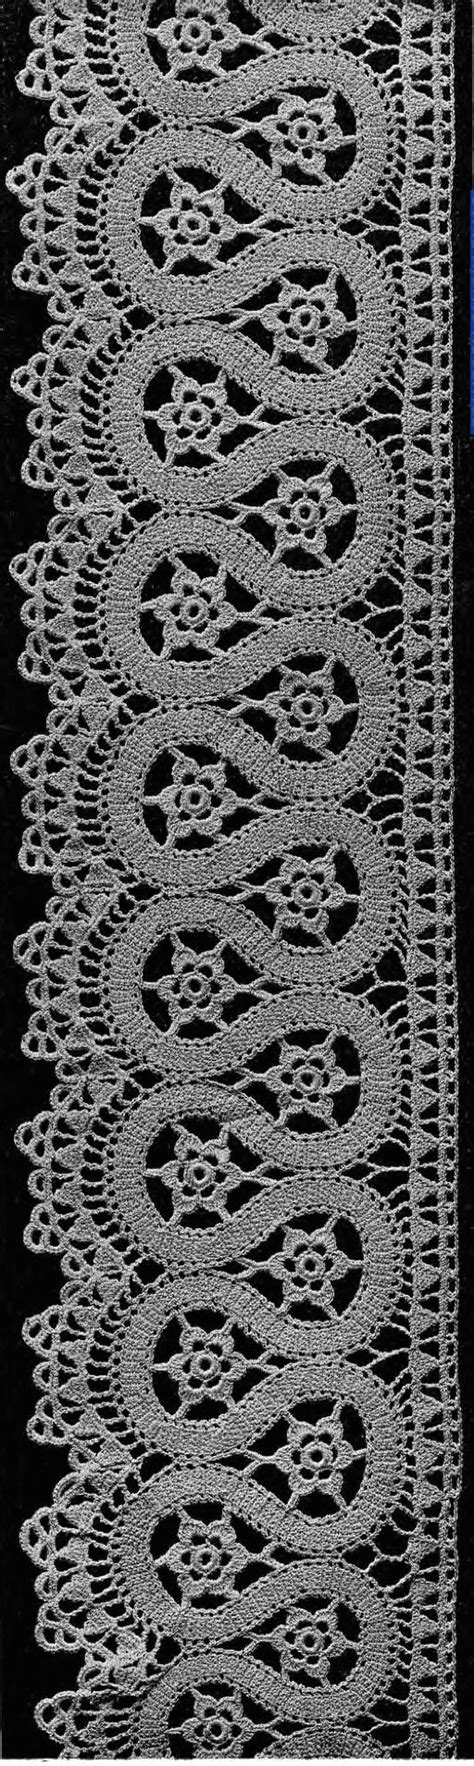 antique pattern library crochet crochet lace booklet in the public domain from madame